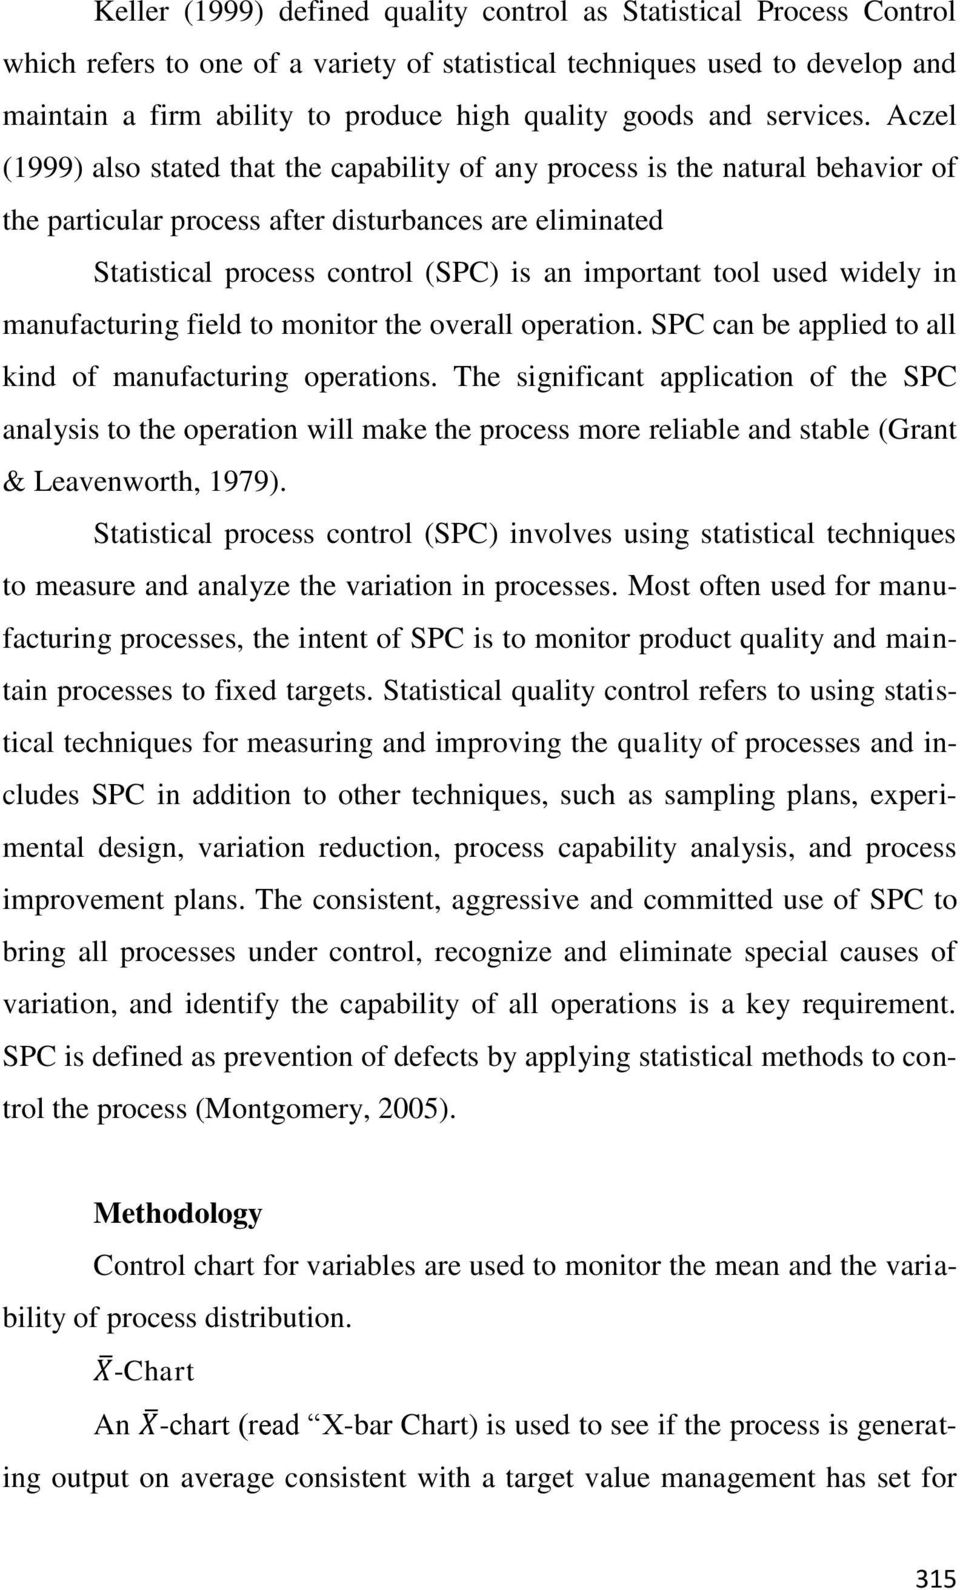 Aczel (1999) also stated that the capability of any process is the natural behavior of the particular process after disturbances are eliminated Statistical process control (SPC) is an important tool